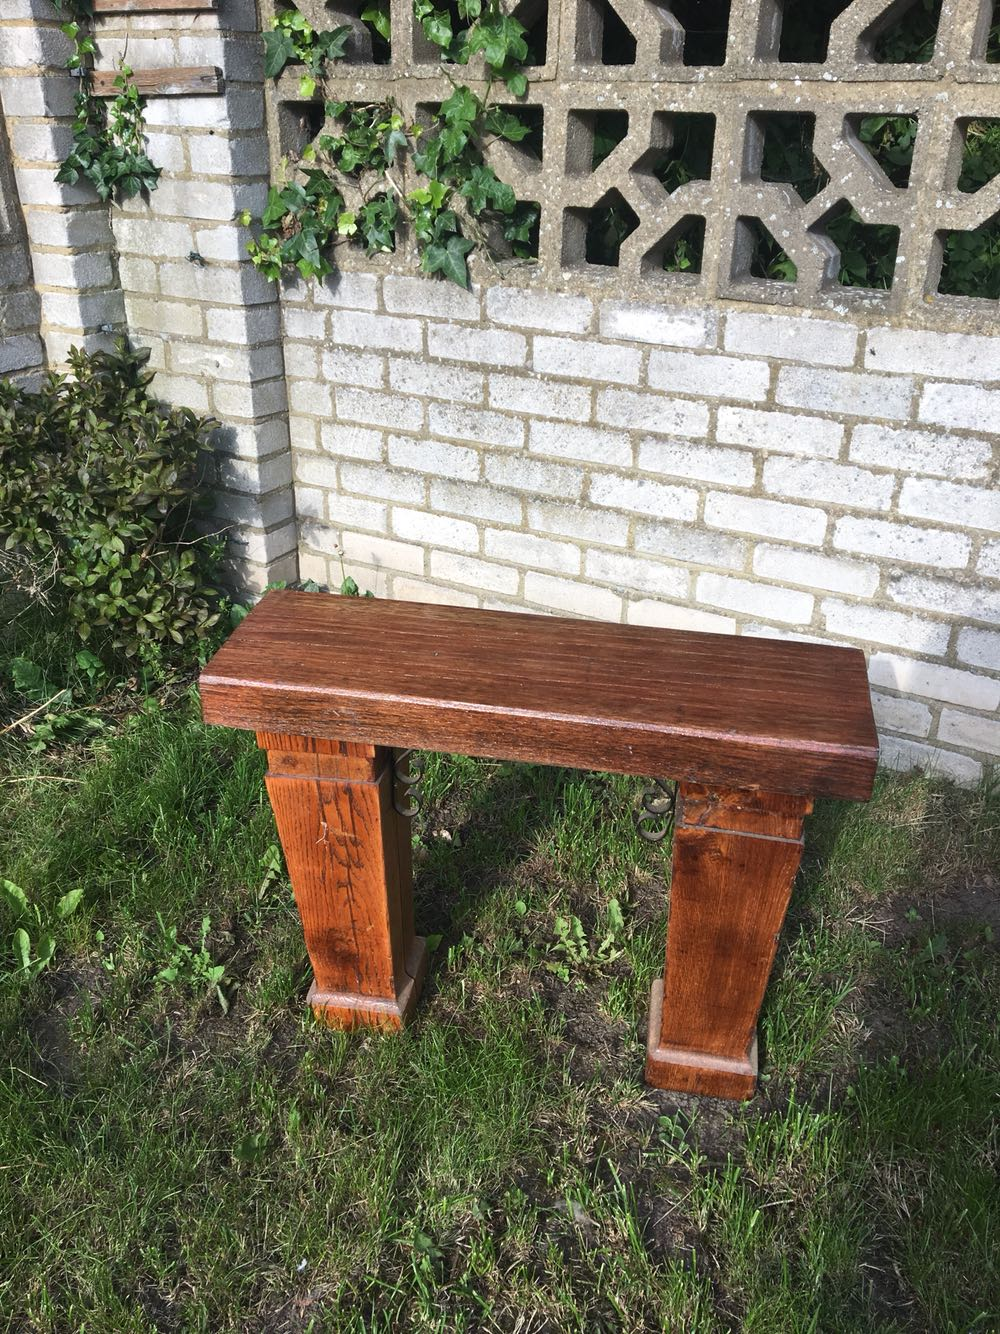 Garden Furniture Made From Sleepers used railway sleepers - local classifieds, buy and sell in the uk